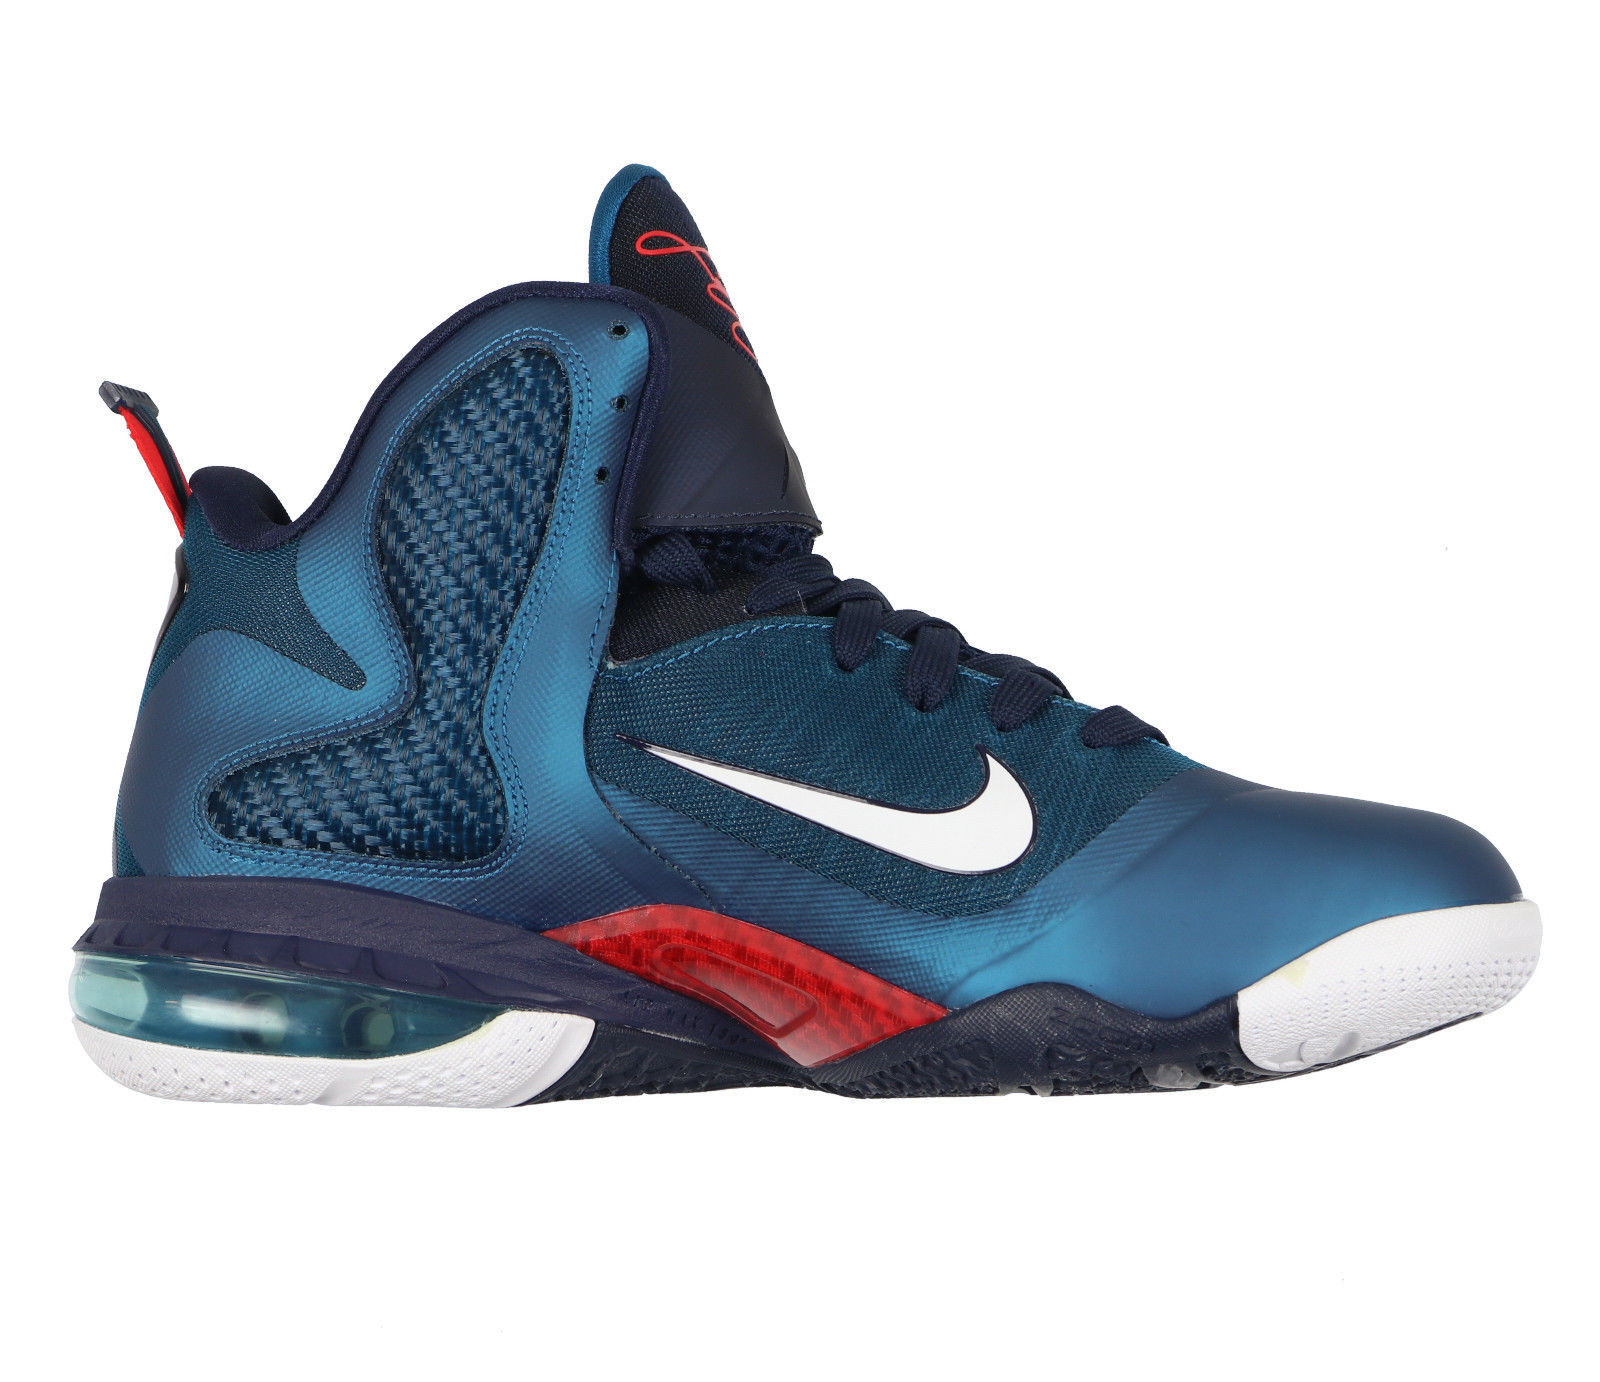 low priced 7defd 6e8be NIKE LeBron 9 Basketball Shoes sz 9 Swingman Edition Green Abyss Griffey